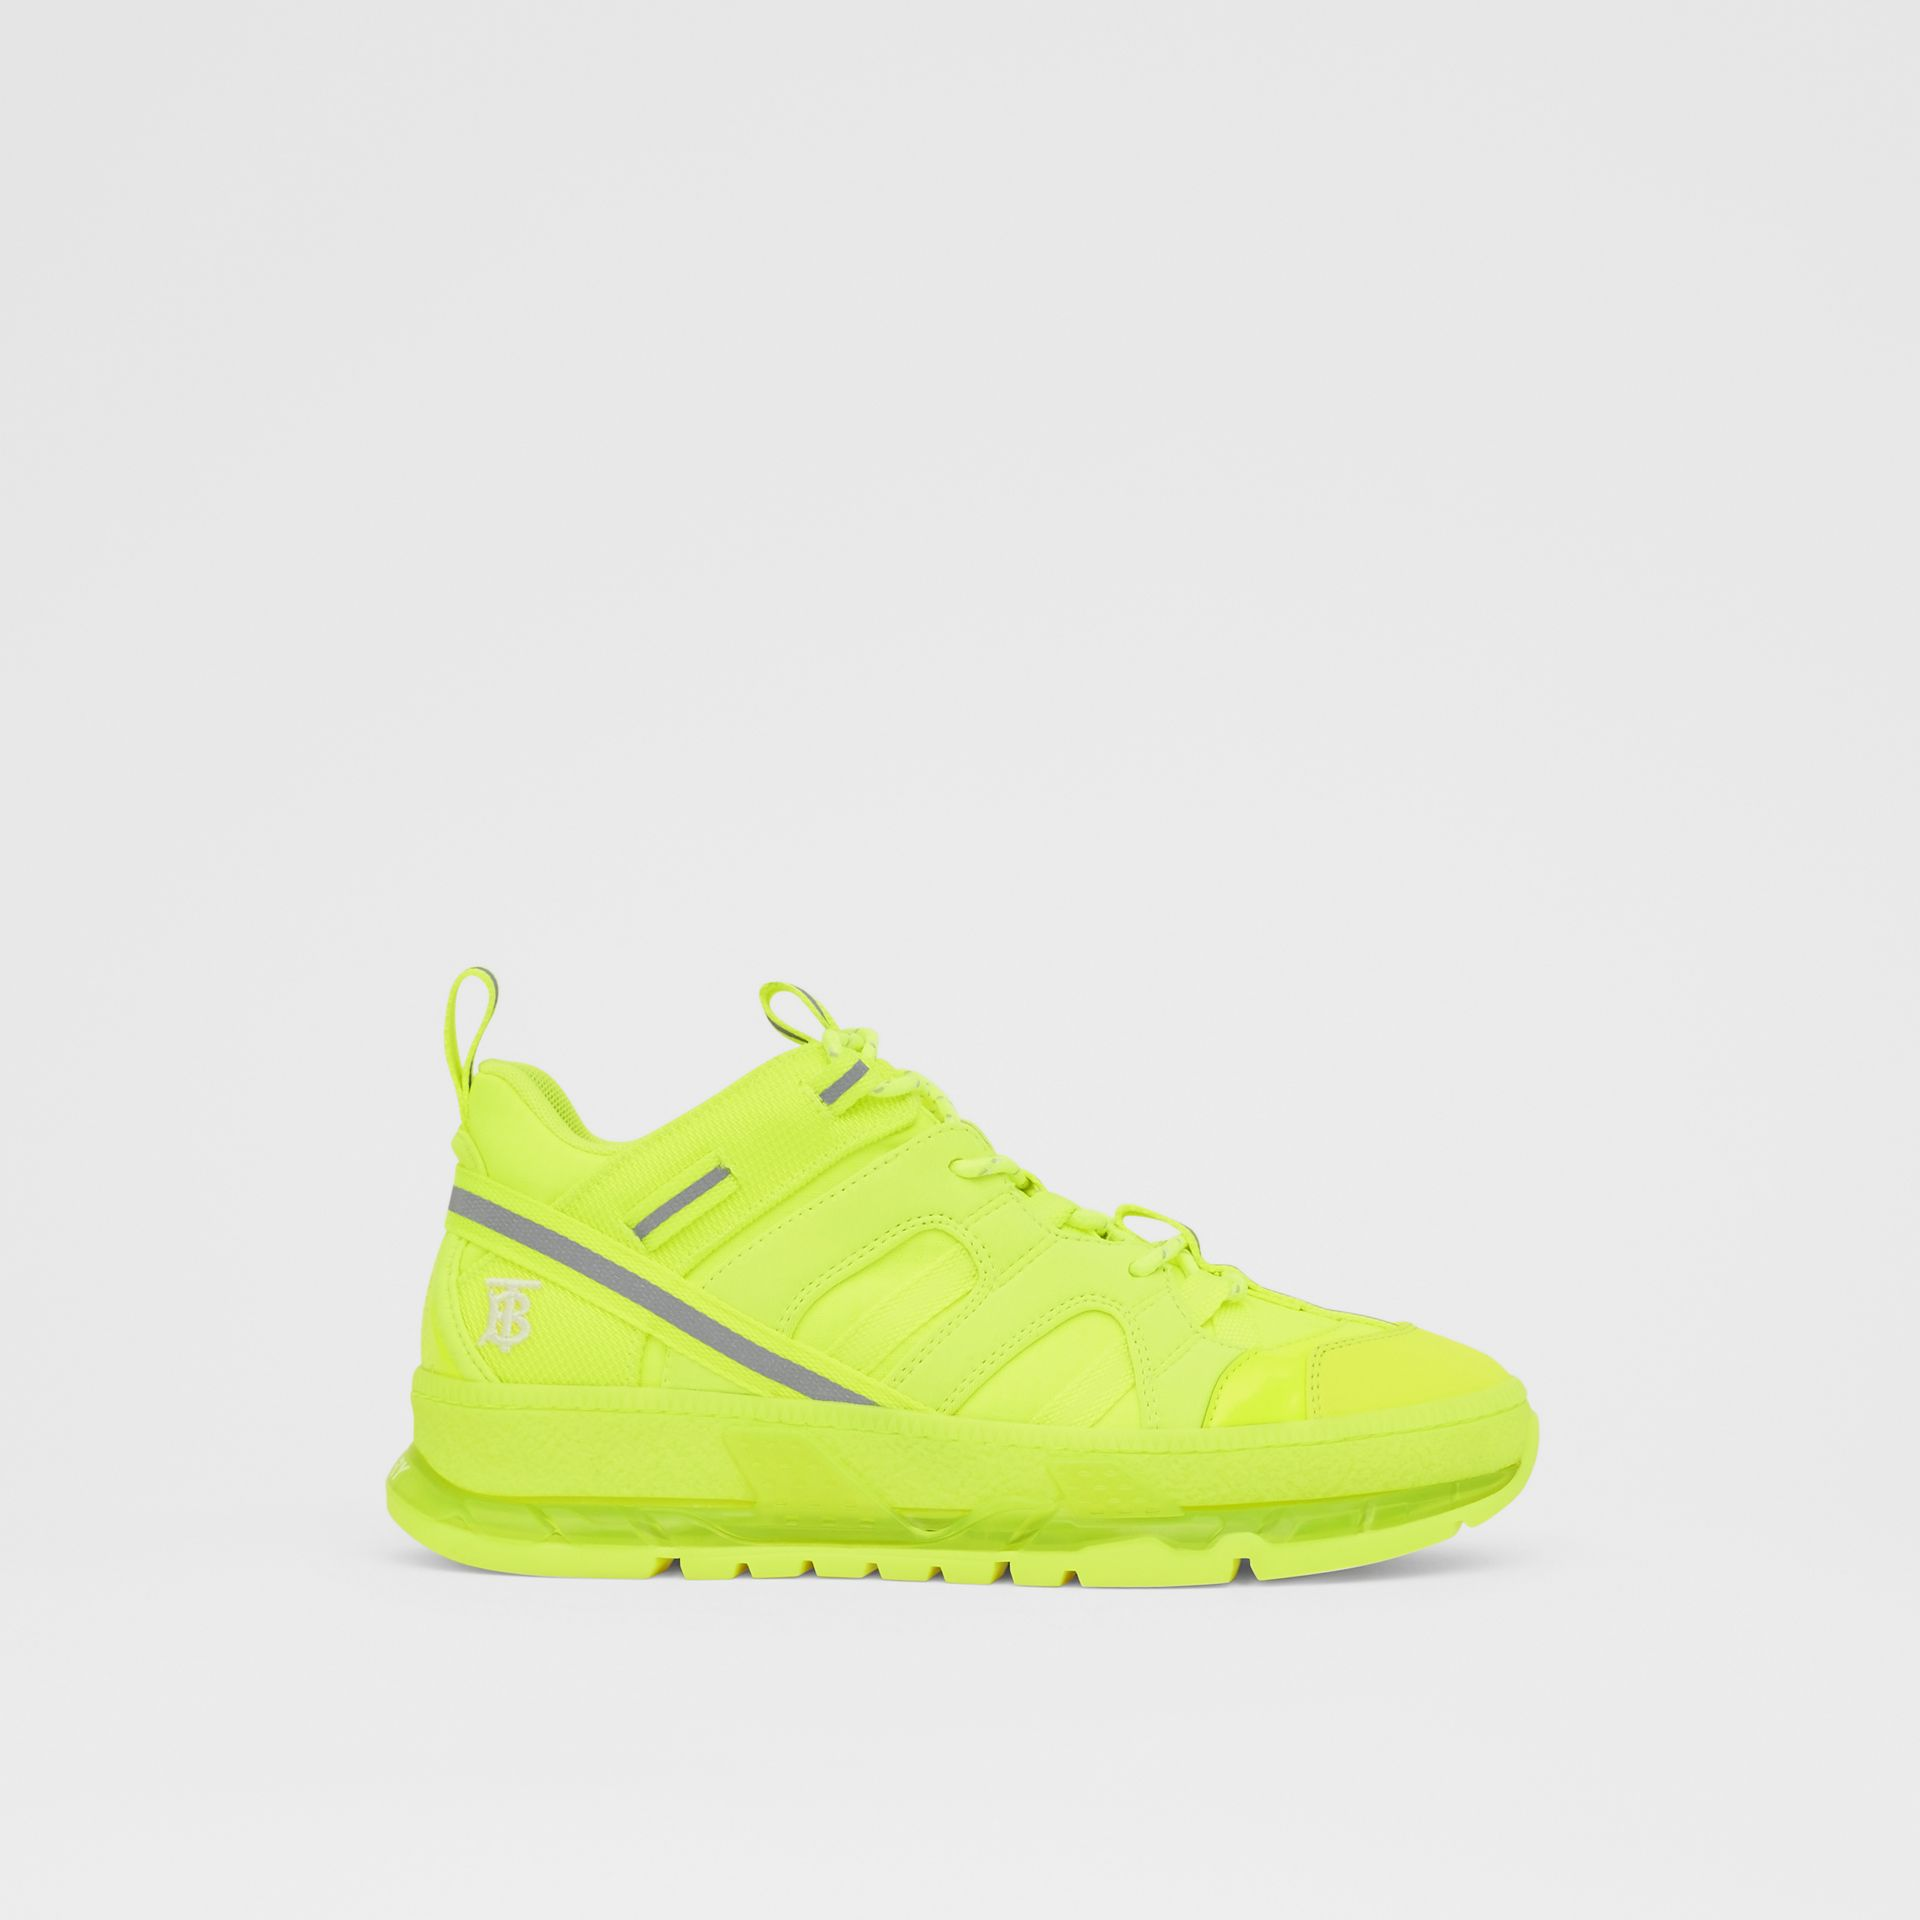 Nylon and Cotton Union Sneakers in Fluorescent Yellow - Women | Burberry United Kingdom - gallery image 5